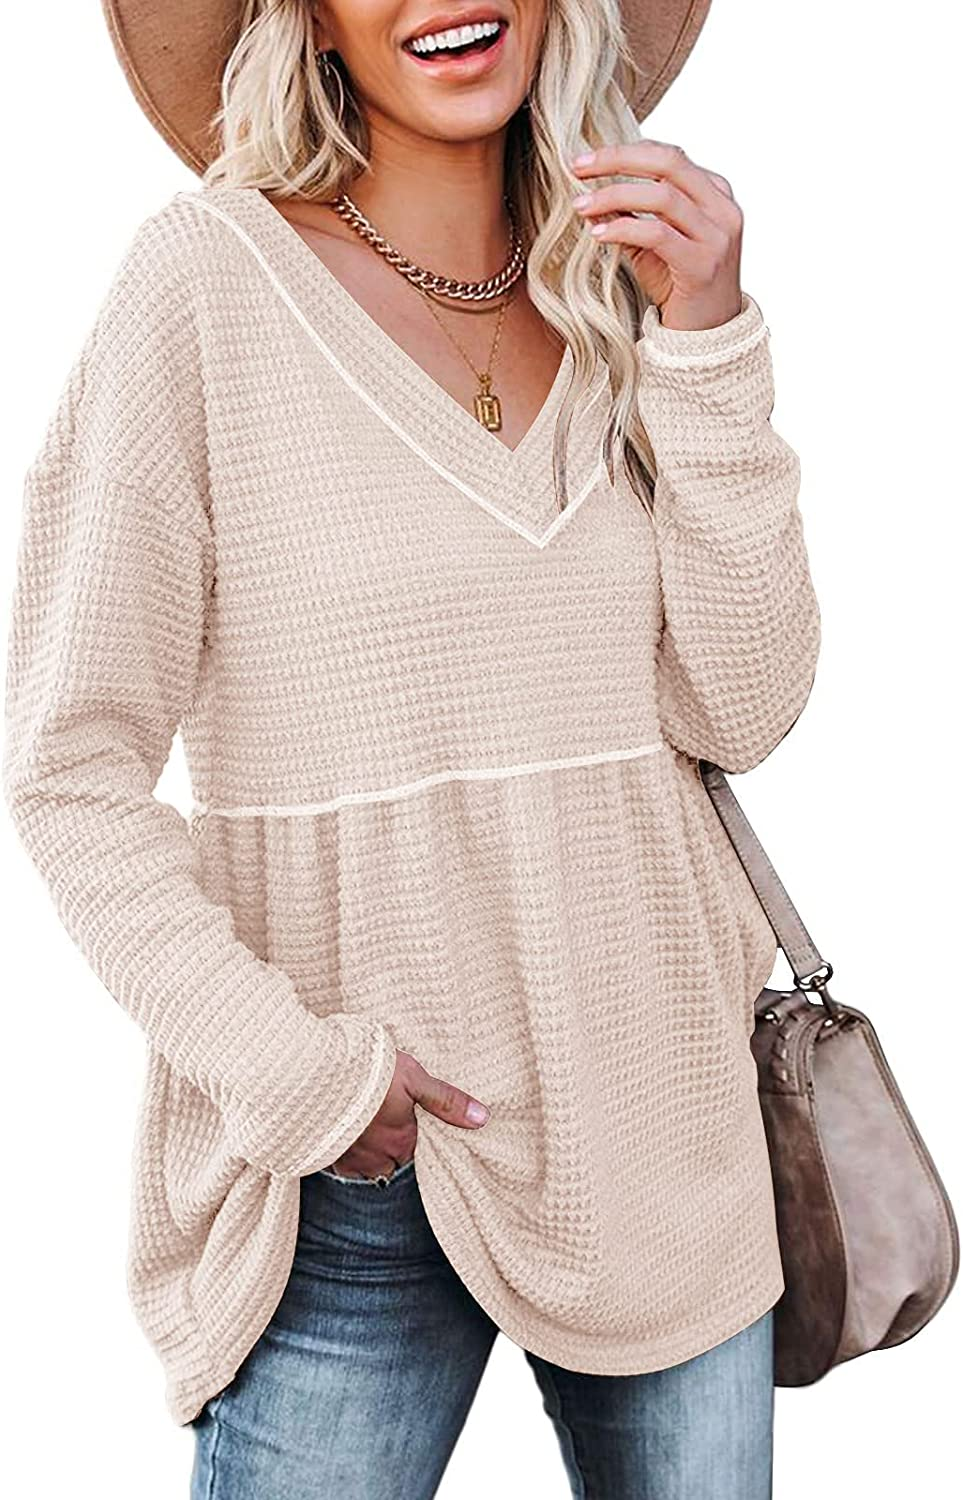 ETCYY Women's V Neck Waffle Tunic Tops Long Sleeve Loose Casual Peplum Tops Babydoll Pullover Sweaters